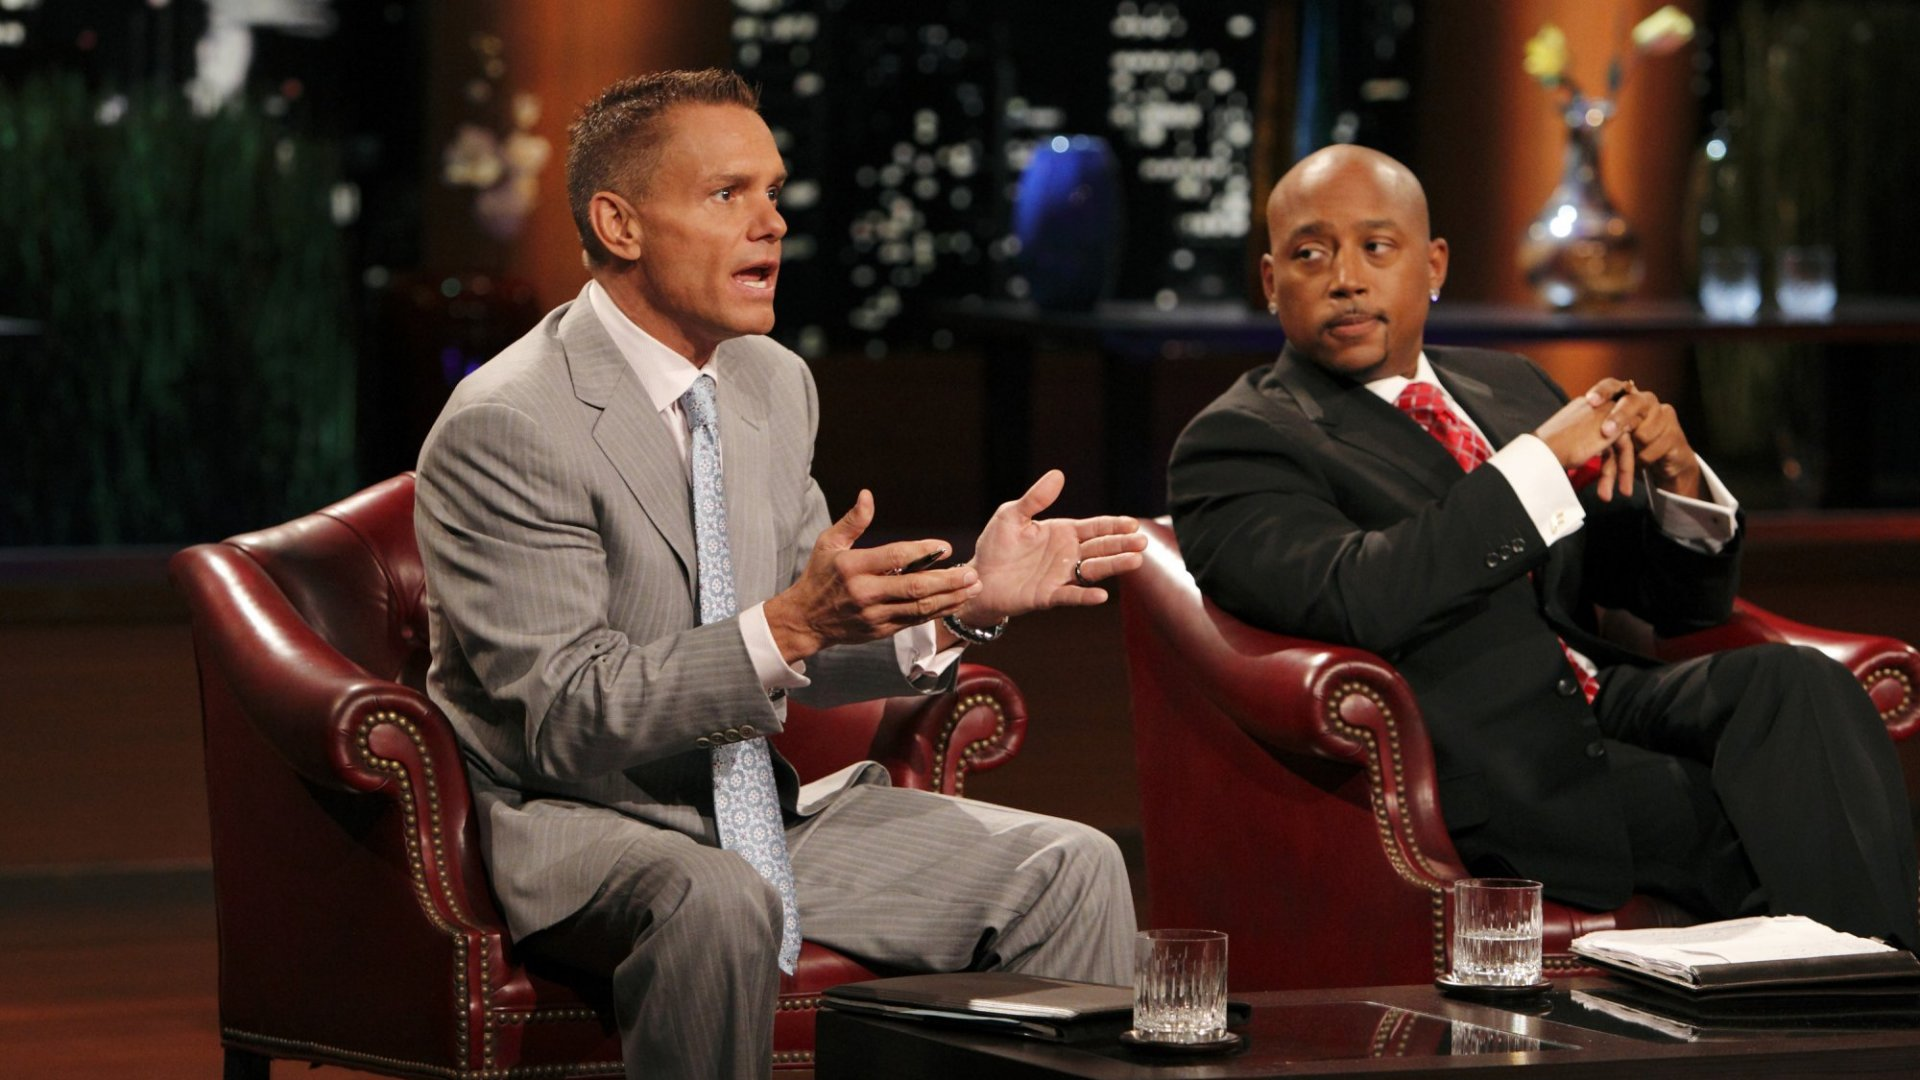 Pitch, Launch, Sell: All the Details for Success From Kevin Harrington